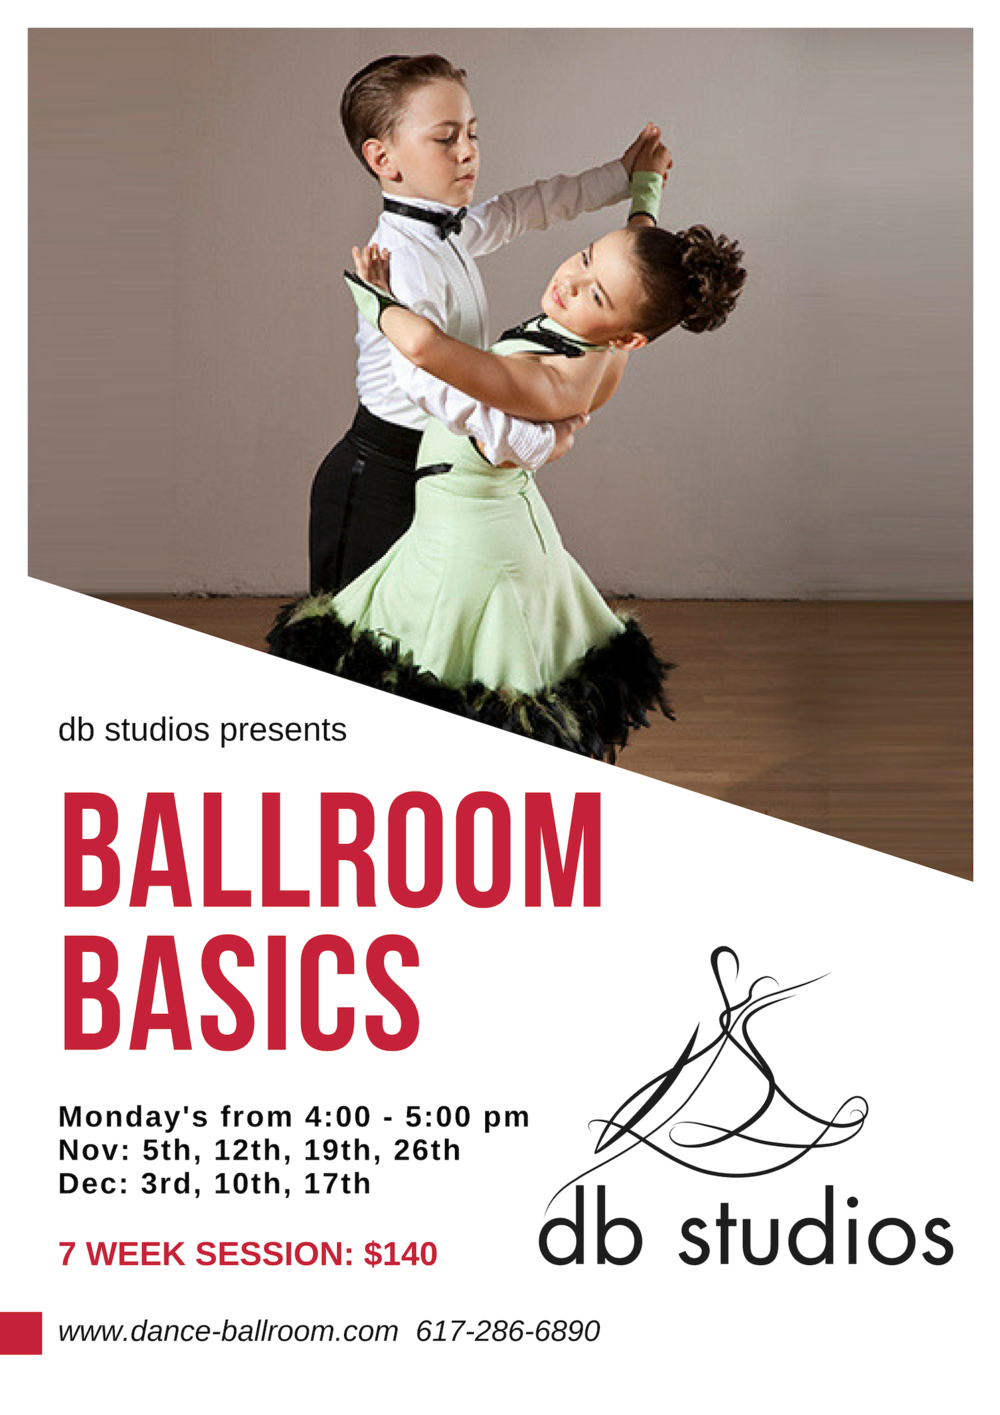 For grades 2-6 this is a wonderful introduction into the world of ballroom dance. To register for class please email kendall@dancingbuns.com   No previous dance experience or partner needed!